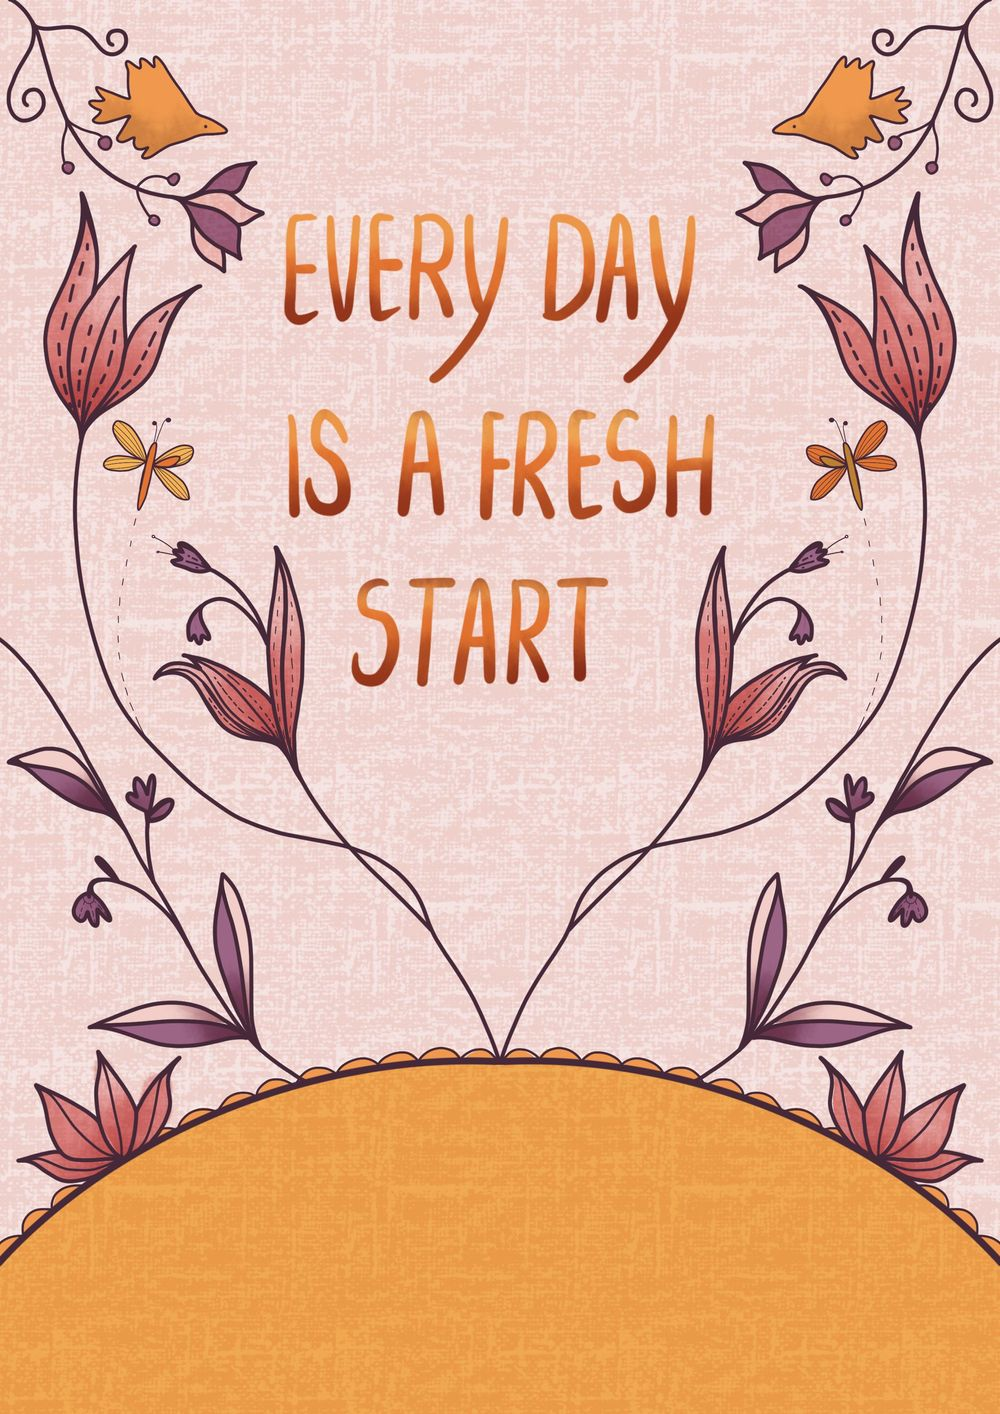 Every day is a fresh start - image 1 - student project